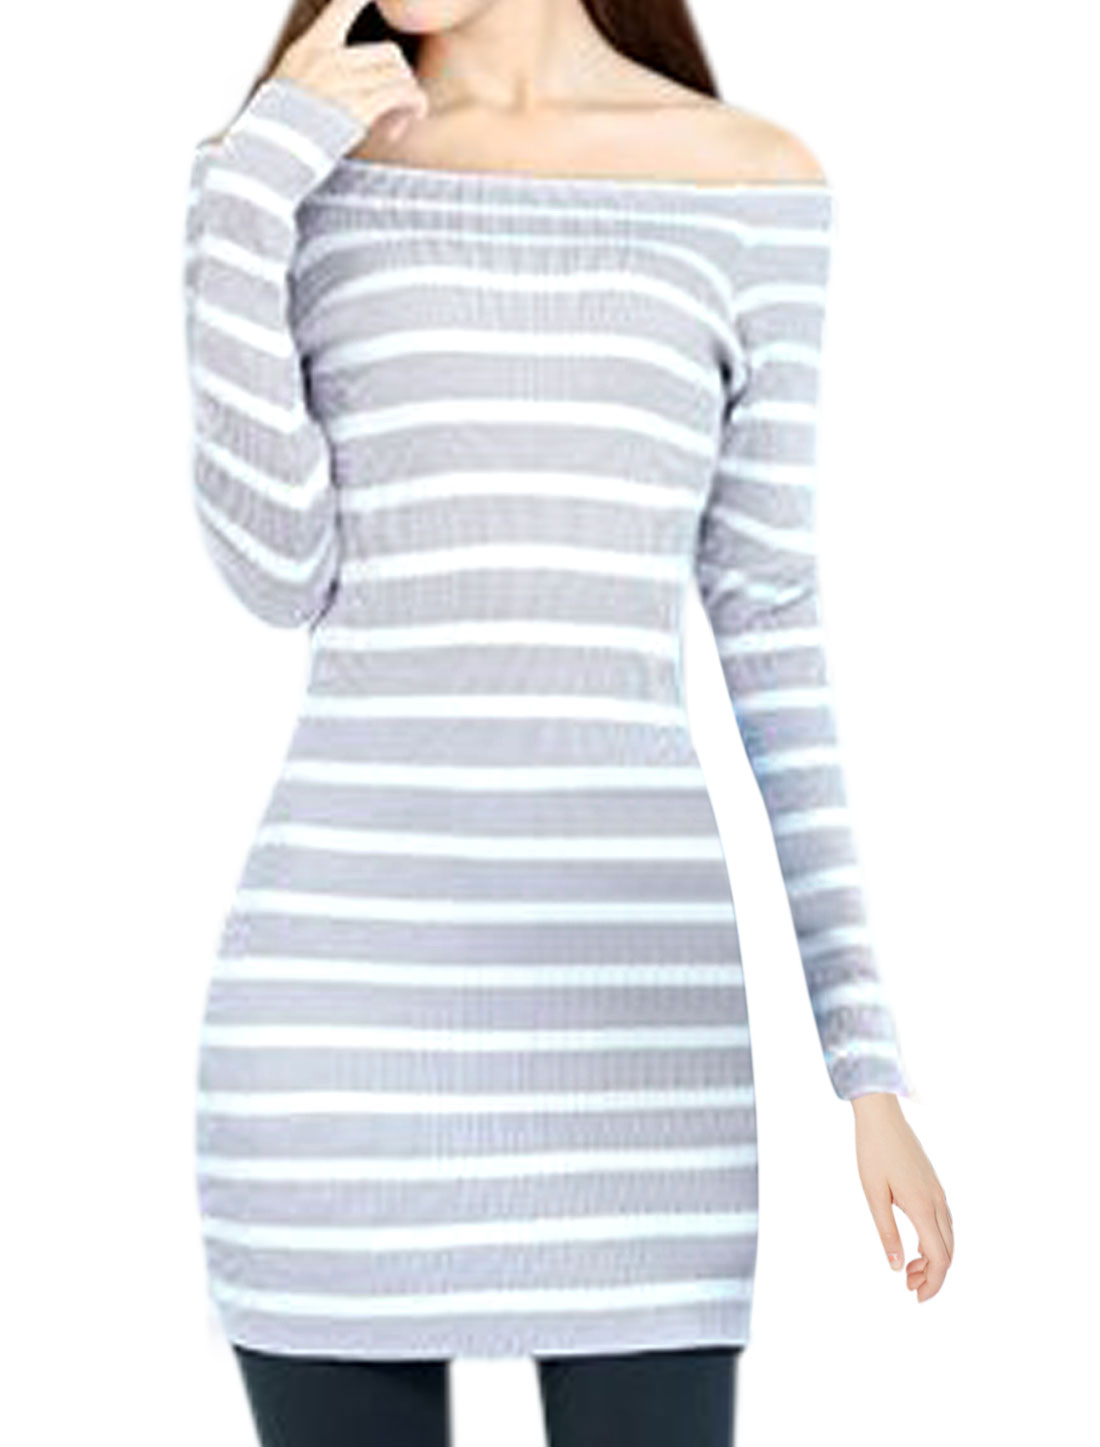 Ladies Stretchy Off Shoulder Design Stripes Slipover Sheath Dress Lavender S